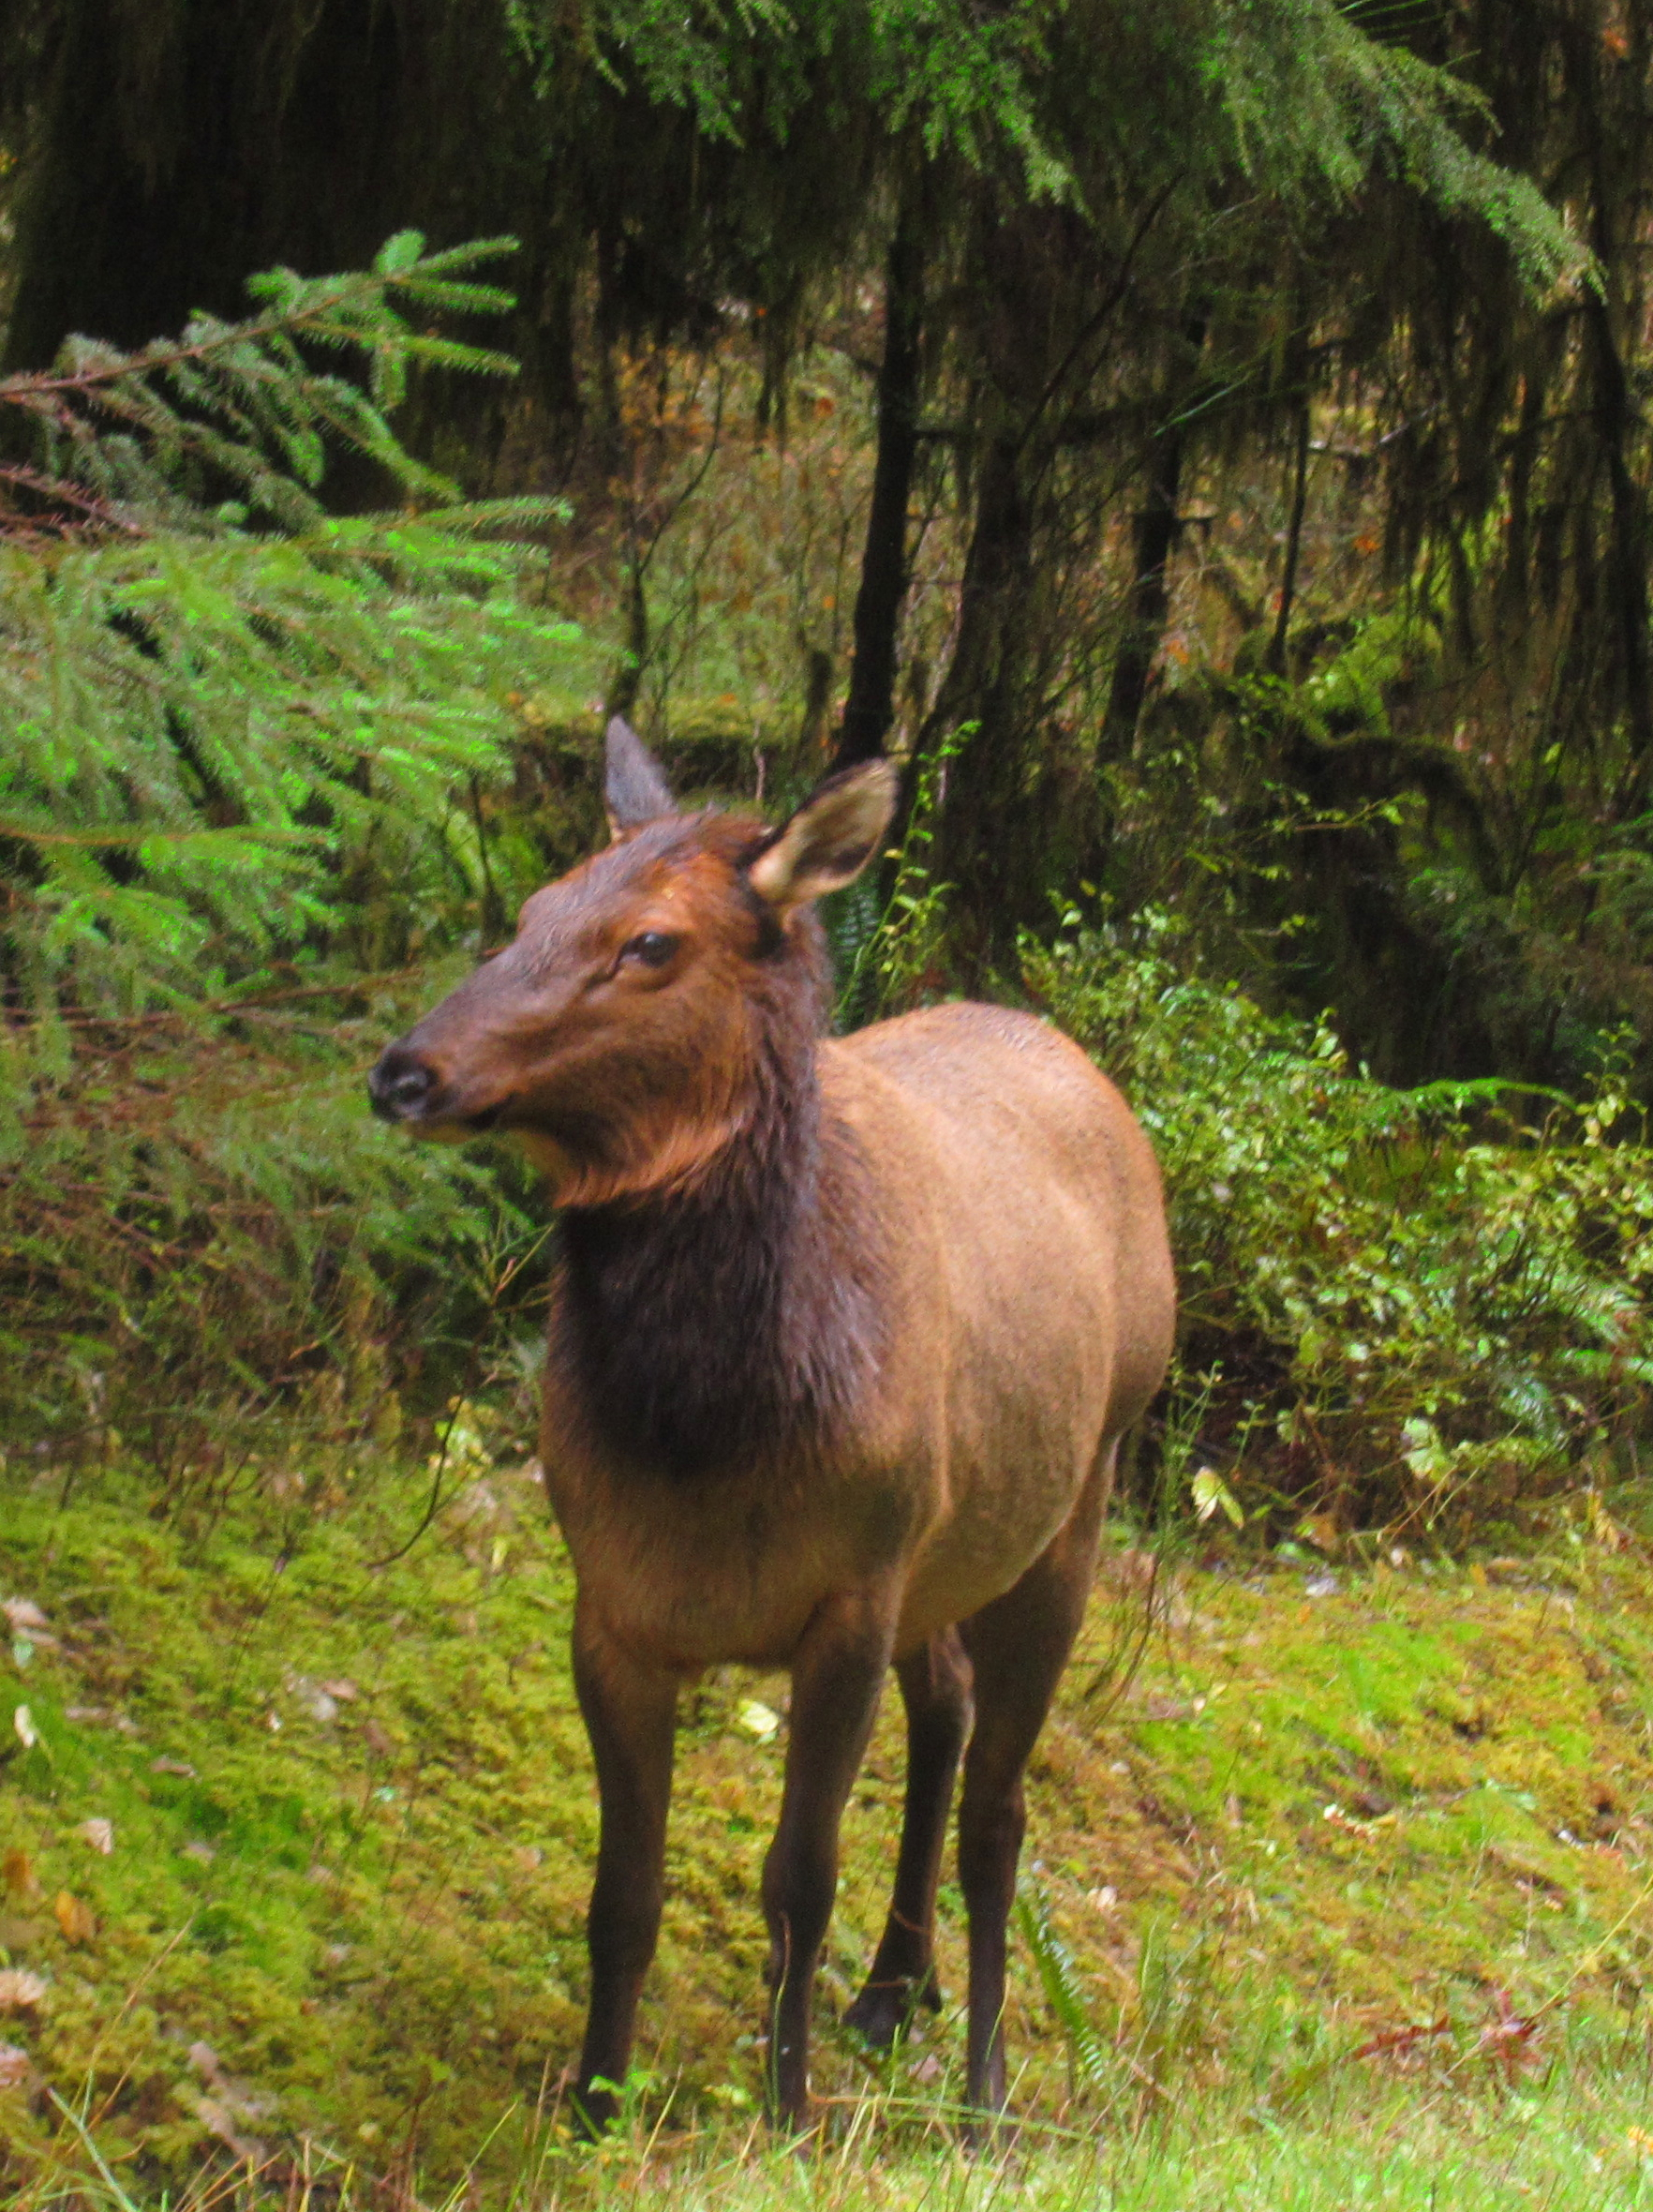 A female Roosevelt Elk with her chocolate brown head, neck, and legs stands to attention at the side of the Hoh Valley road